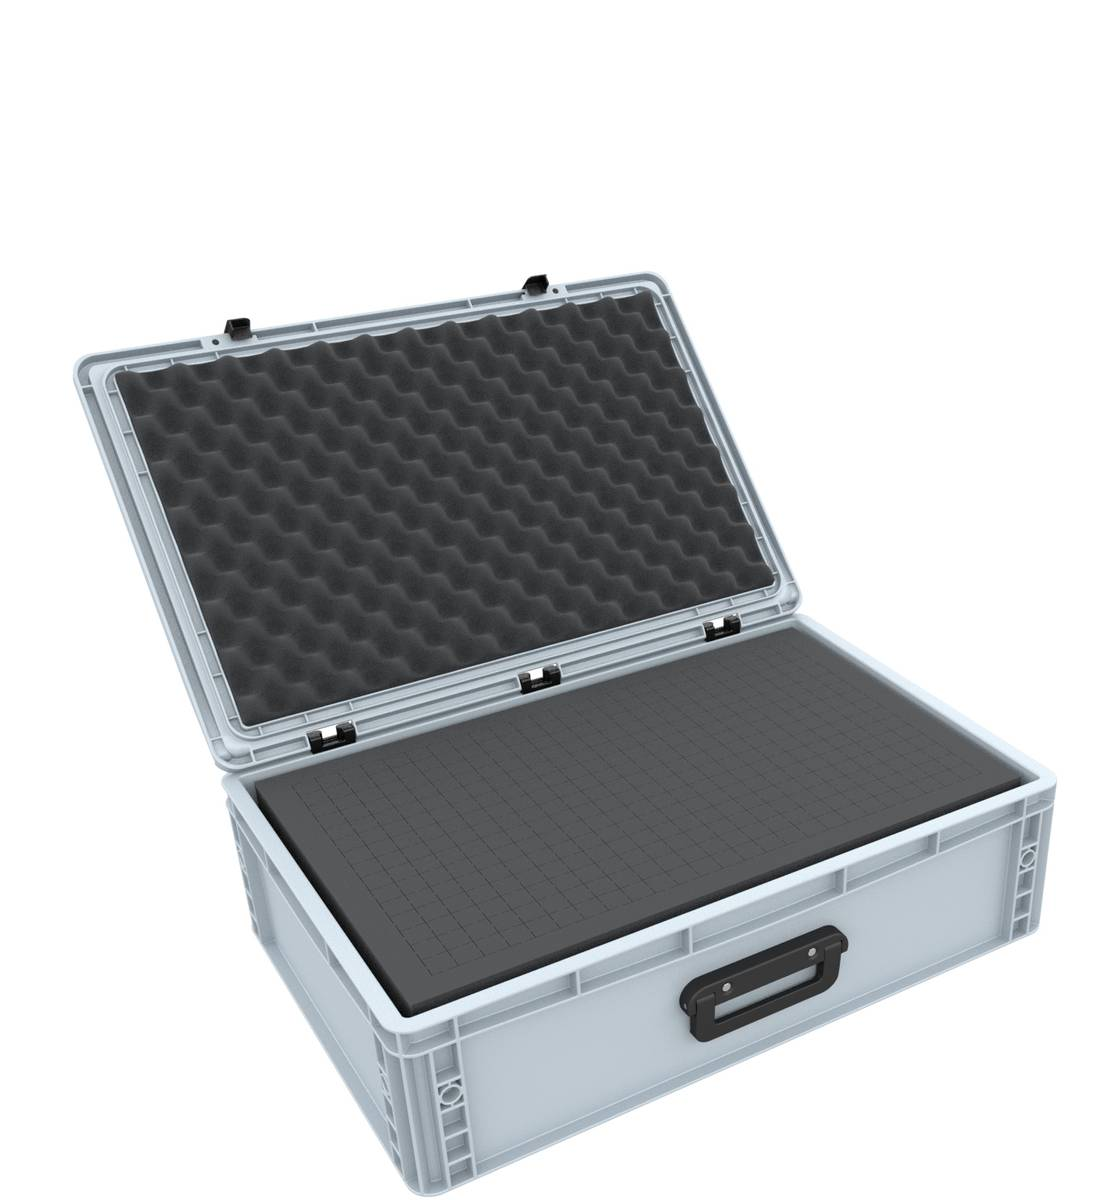 Eurobox Case with handle 600 x 400 x 185 mm inclusive pick and pluck foam